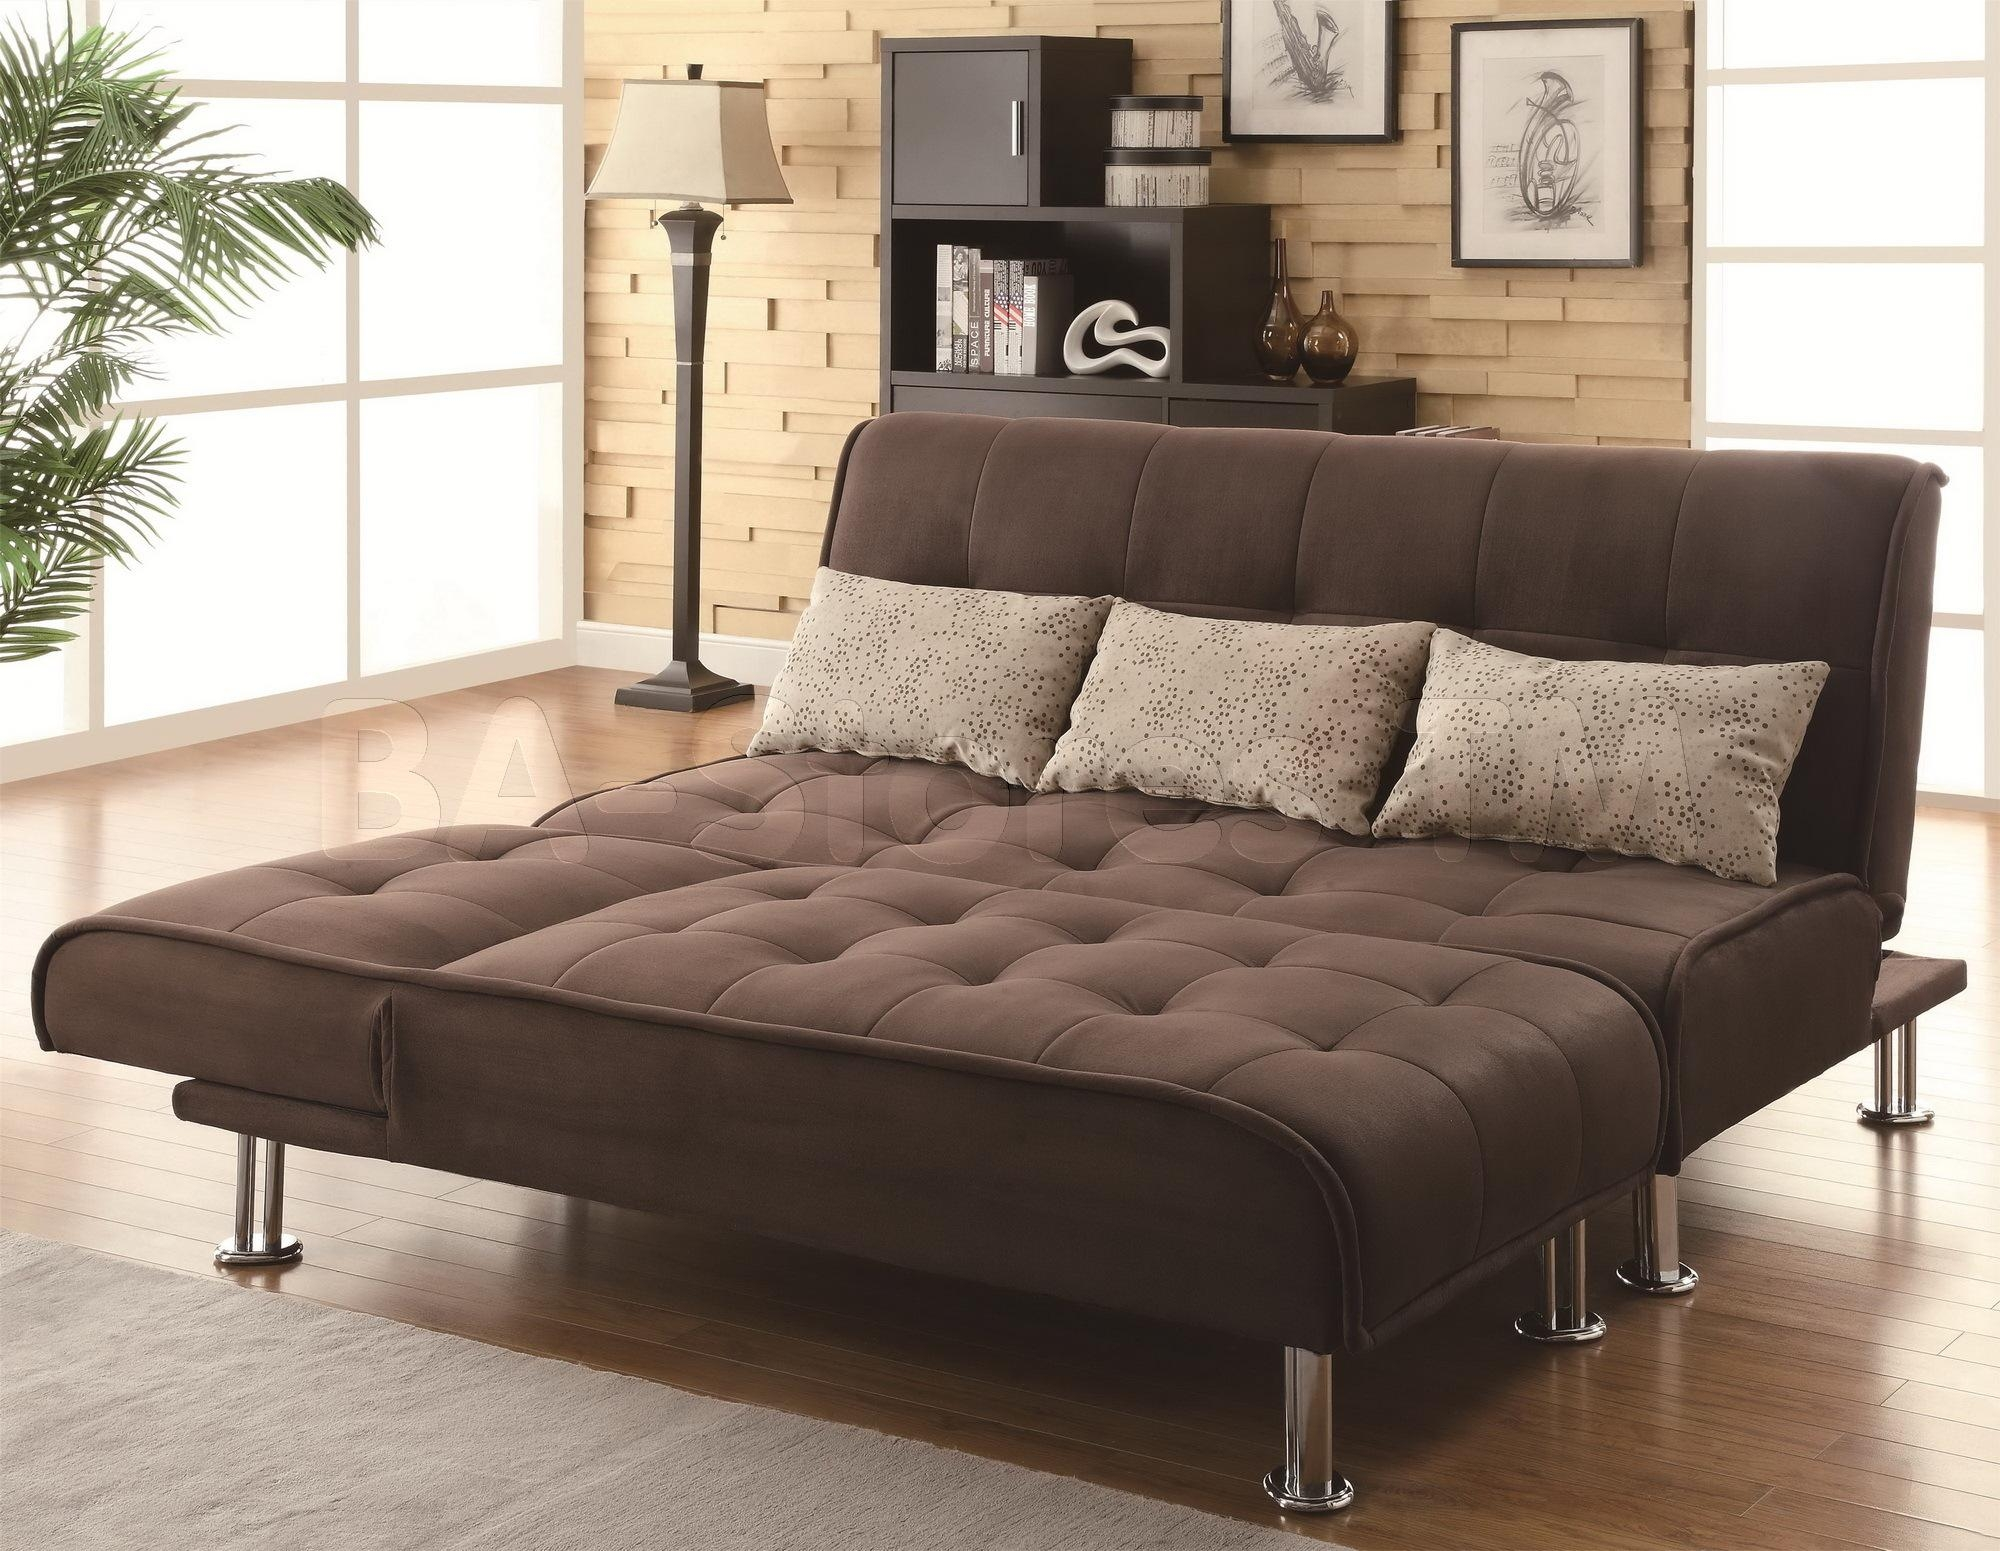 Furniture: Comfortable Tempurpedic Sofa Bed For Cozy Living Room In Full Size Sofa Beds (Image 5 of 20)